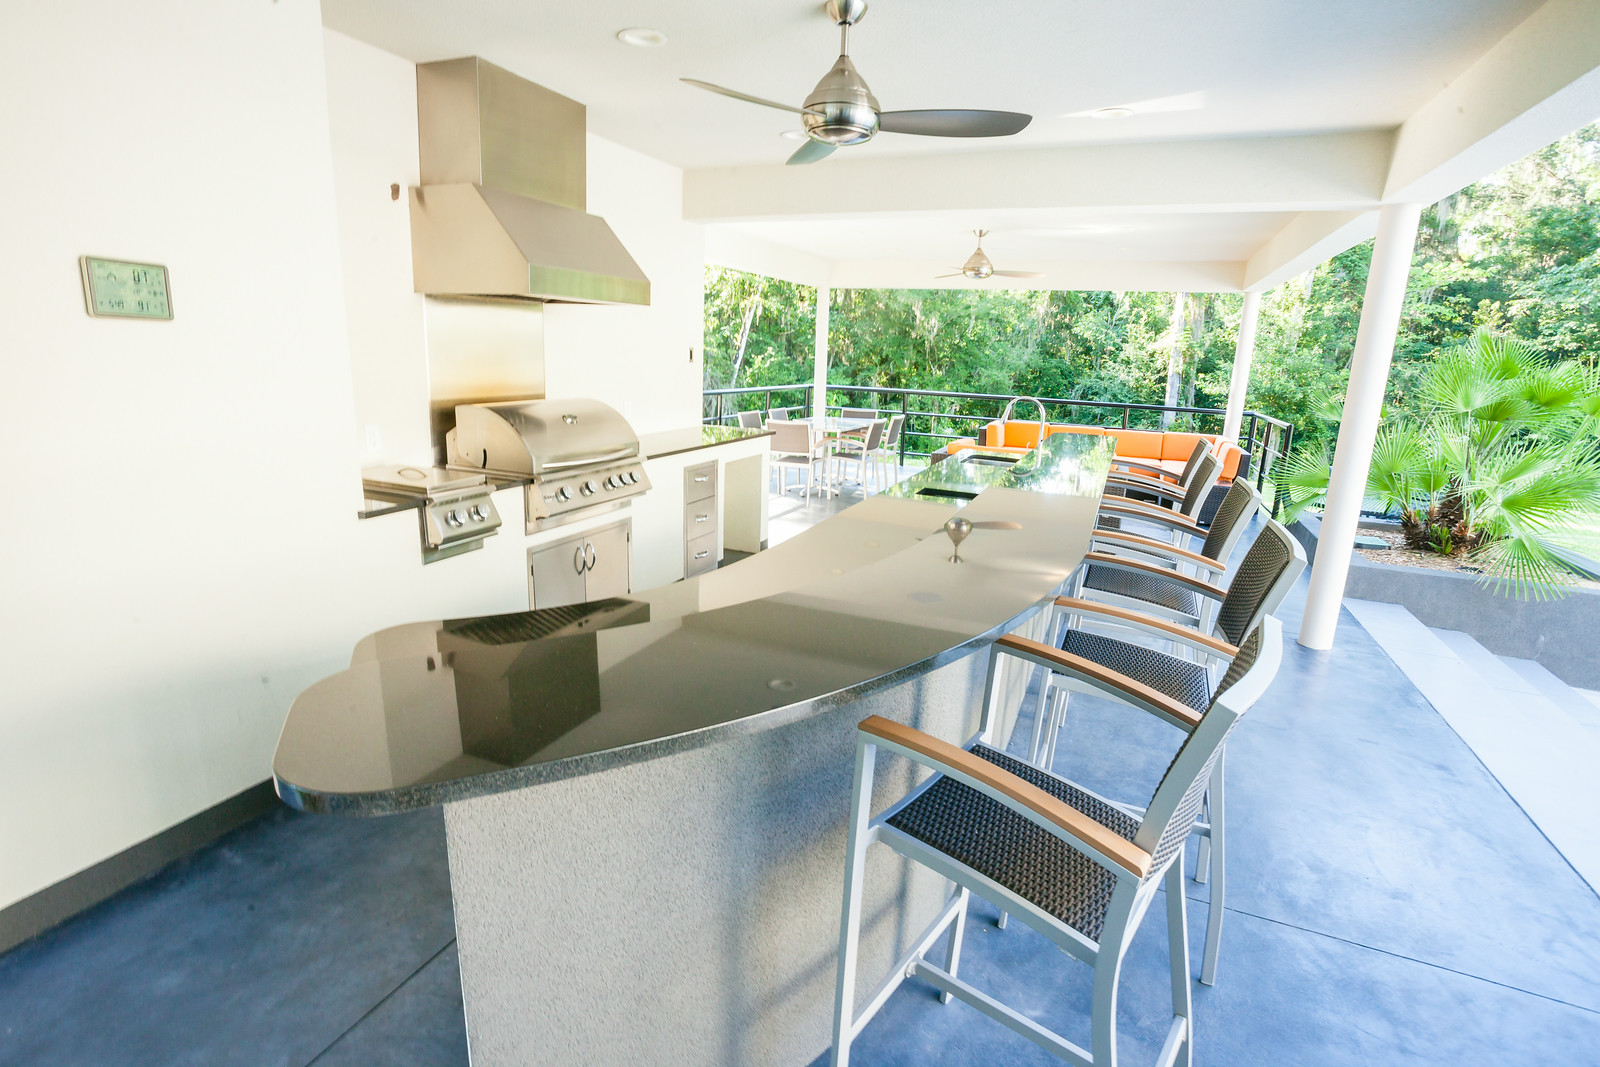 Outdoor Kitchen - Chandra Home